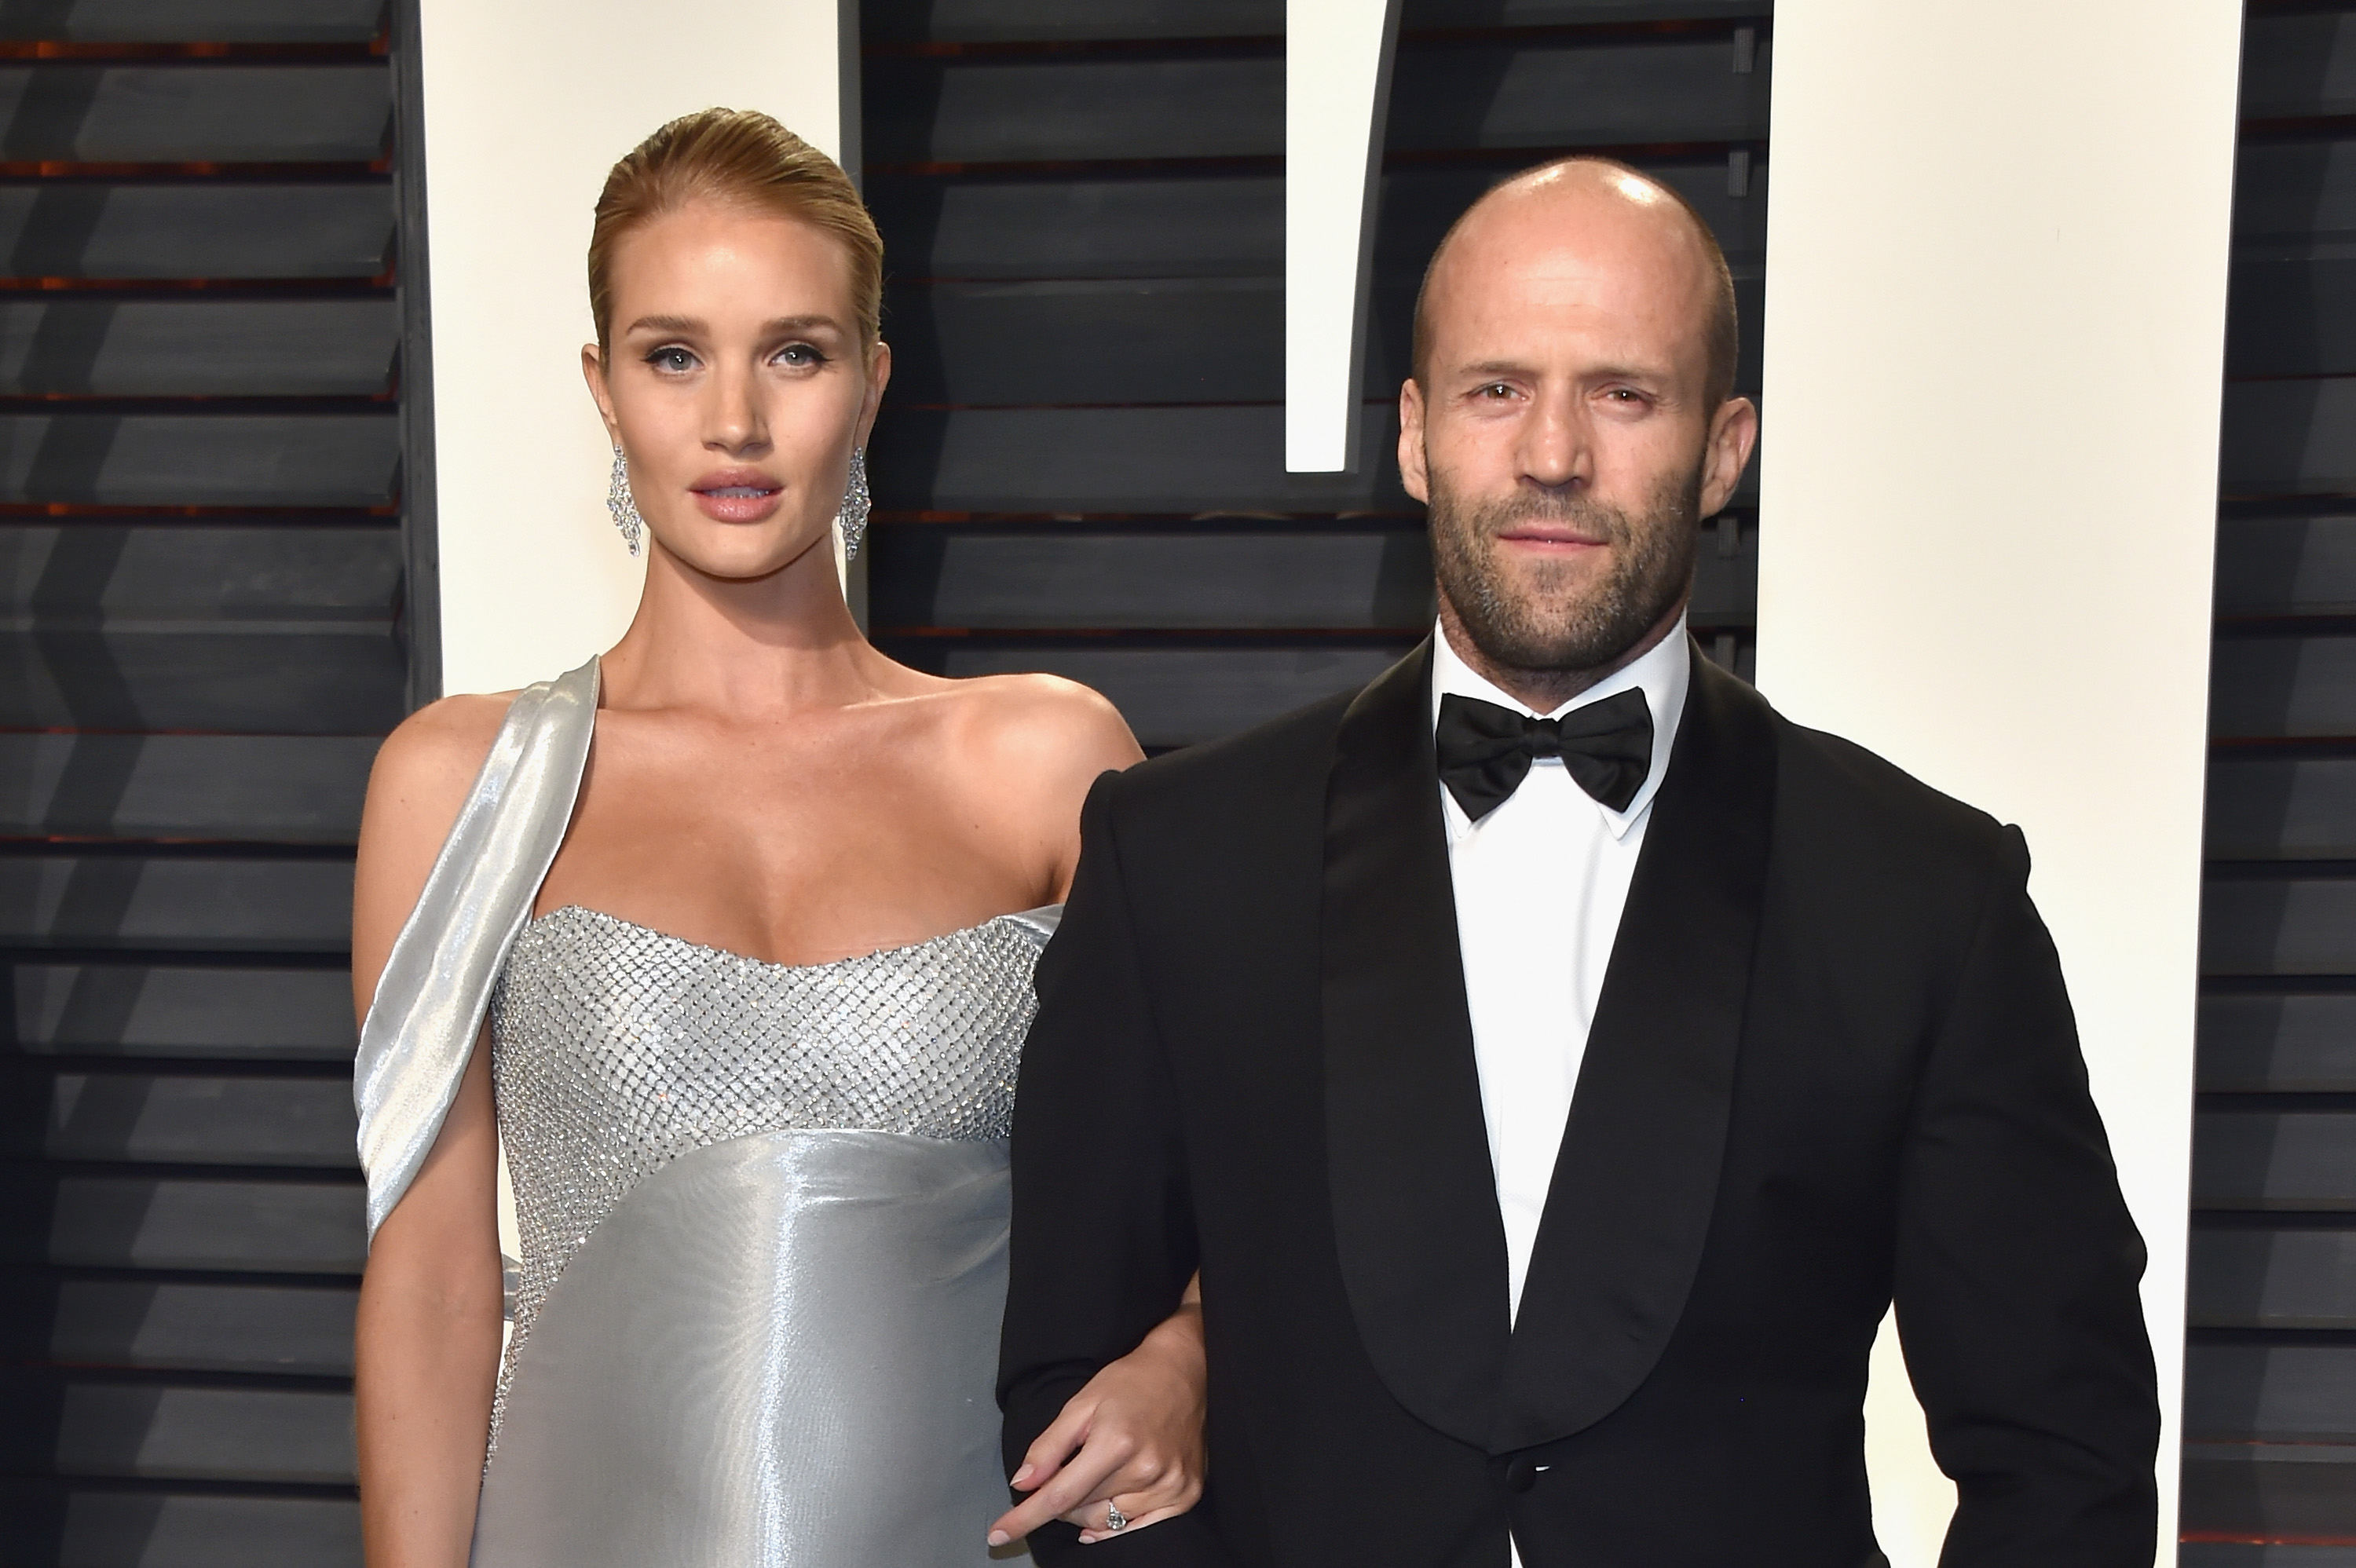 BEVERLY HILLS, CA - FEBRUARY 26:  Model-actor Rosie Huntington-Whiteley (L) and actor Jason Statham attend the 2017 Vanity Fair Oscar Party hosted by Graydon Carter at Wallis Annenberg Center for the Performing Arts on February 26, 2017 in Beverly Hills, California.  (Photo by Pascal Le Segretain/Getty Images)